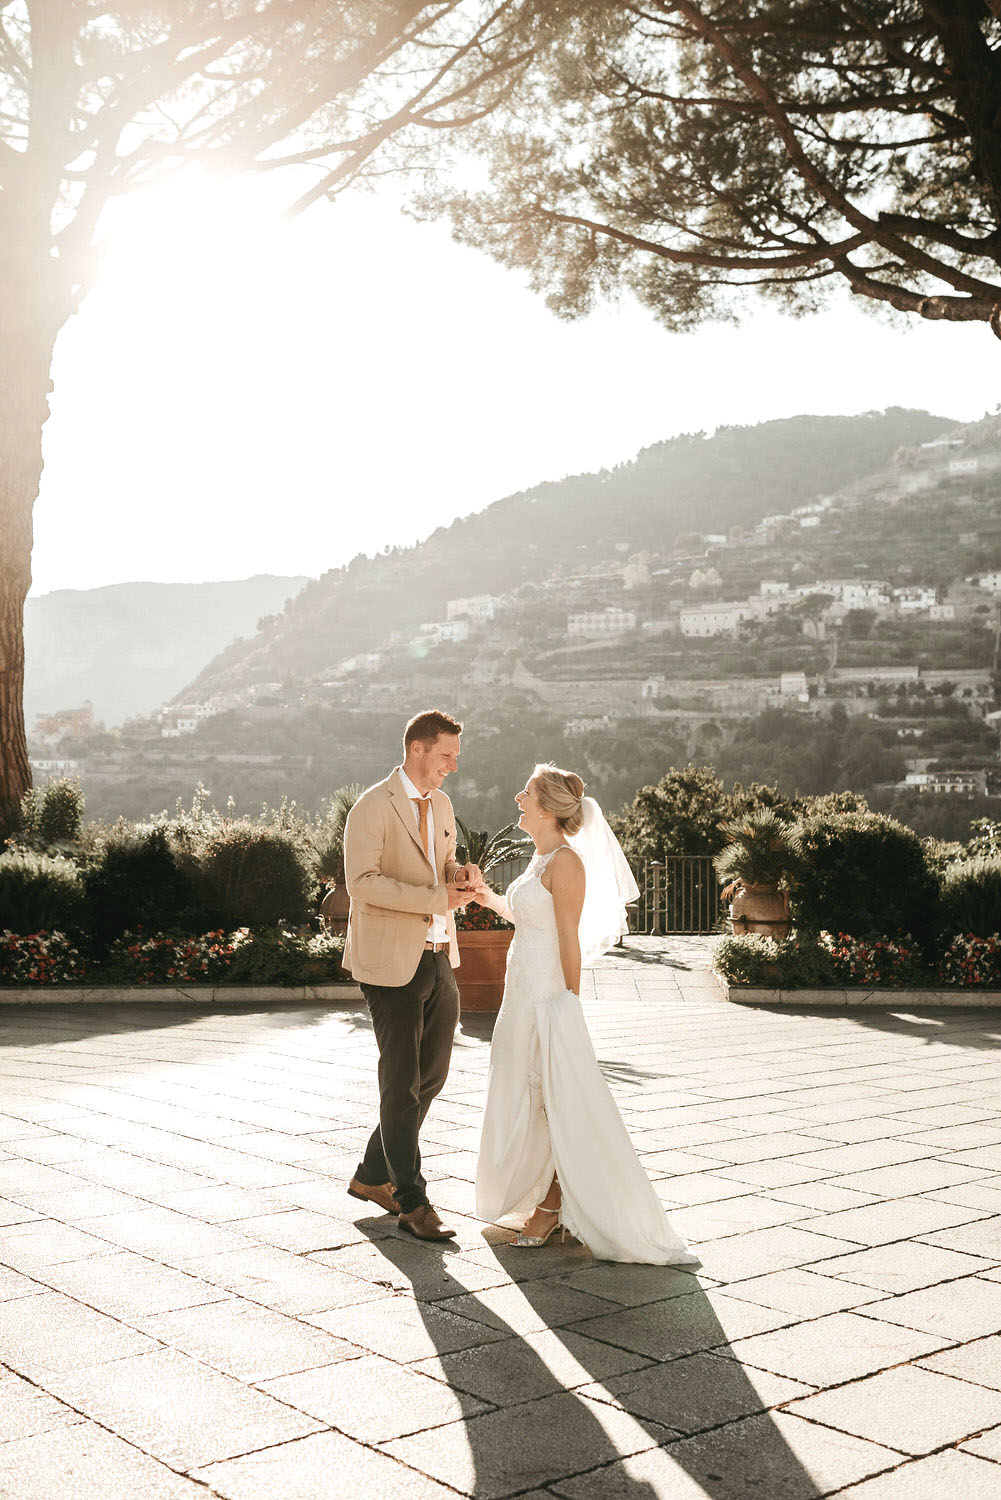 Wedding in Ravello taken by destination wedding photographer on the Amalfi Coast in Italy.